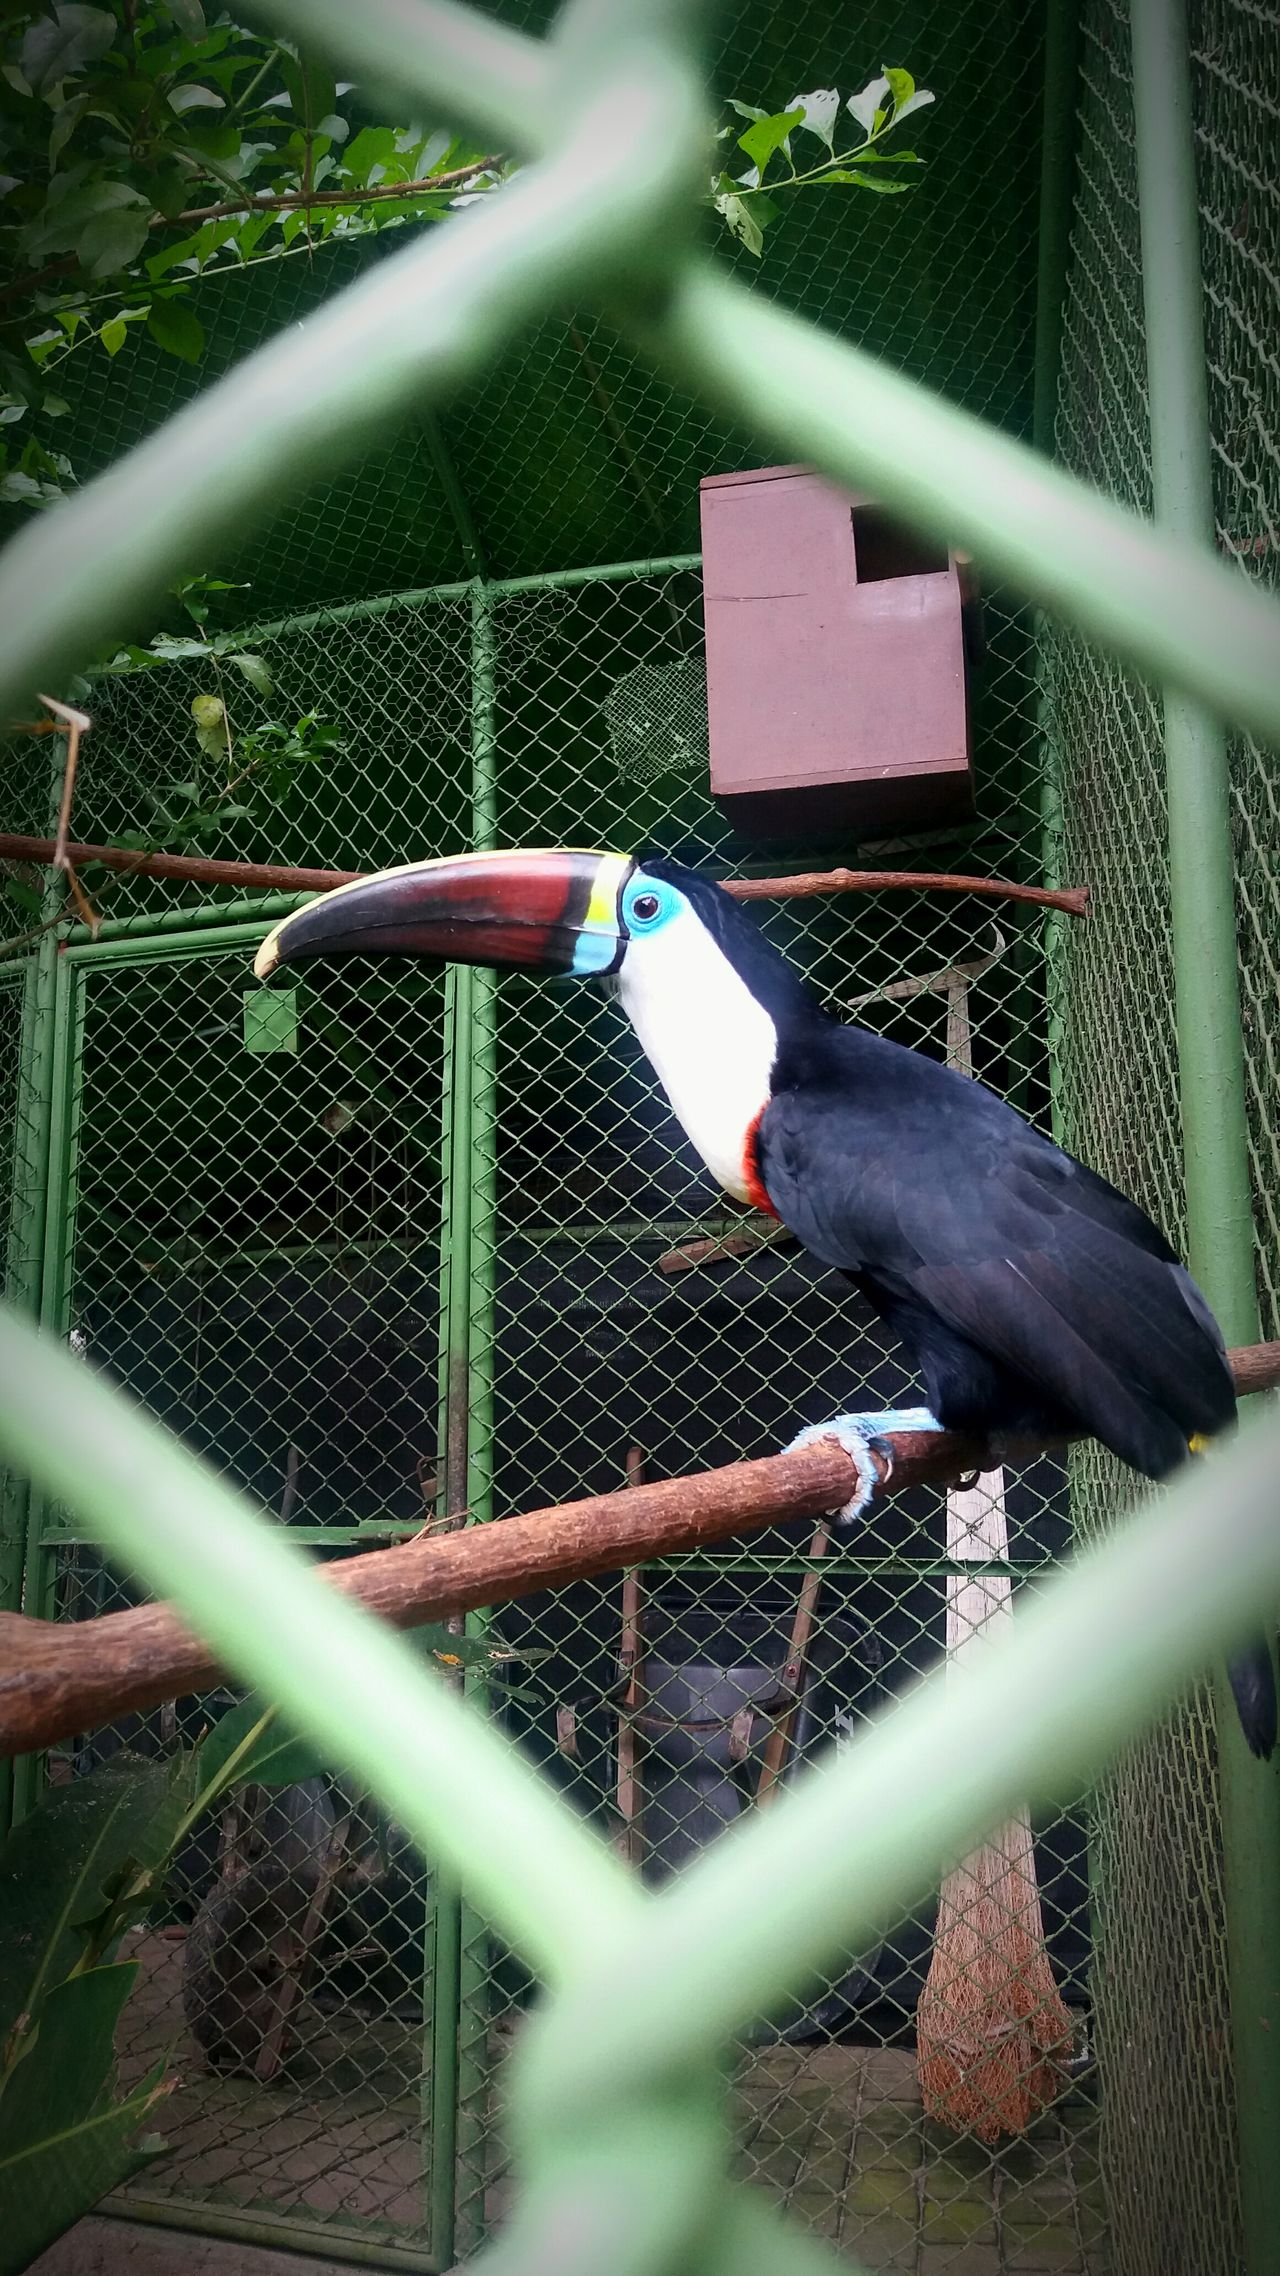 Bird Nature Beauty In Nature Tucan